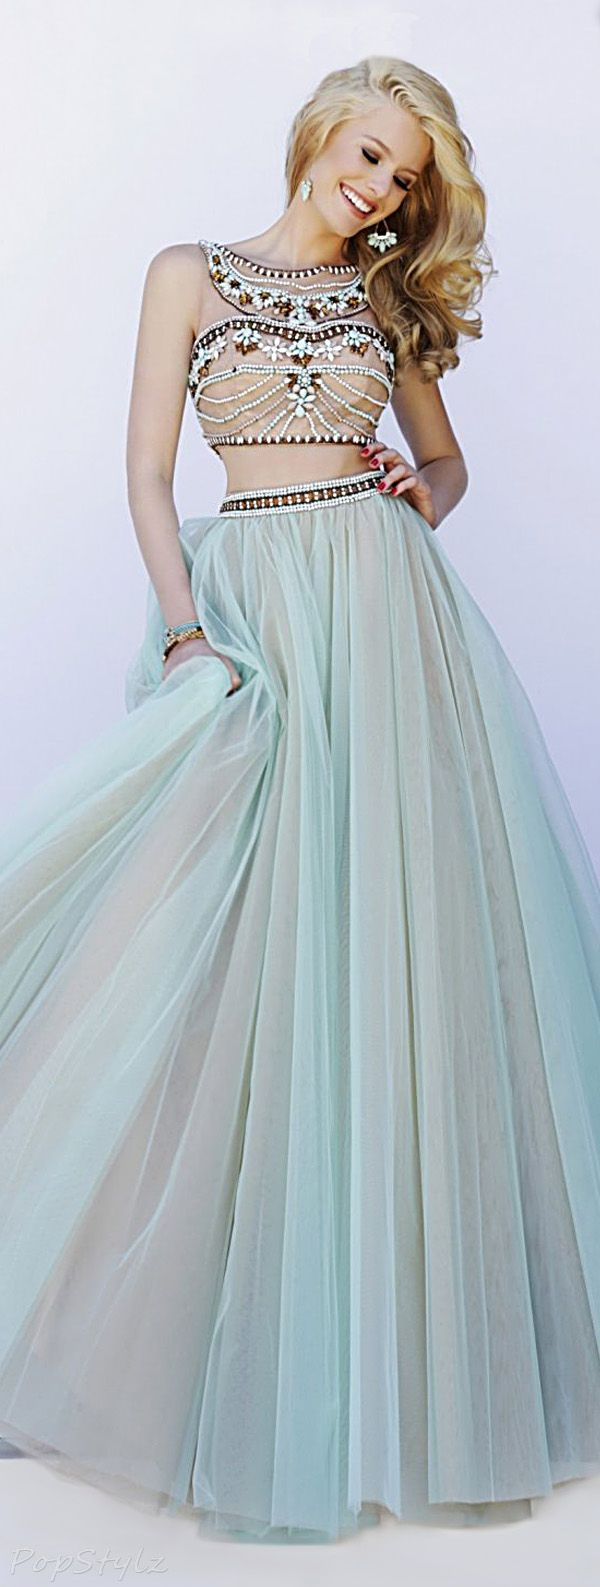 Sherri Hill 11271 Lovely Long Flowing Mint Evening Gown | Serri ...